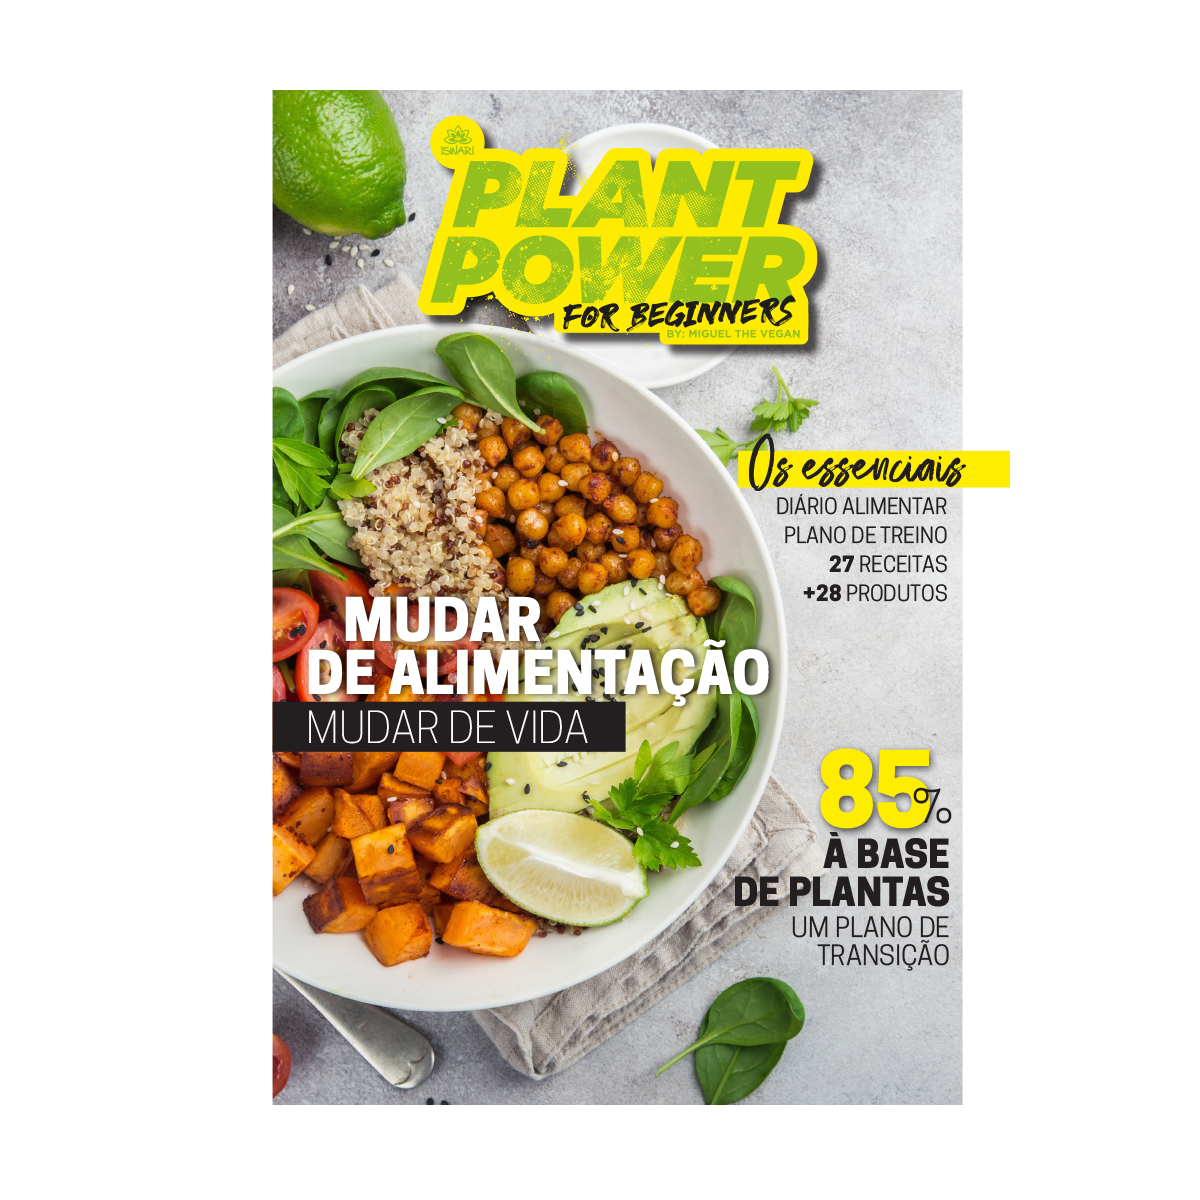 PLANT POWER FOR BEGINNERS 2